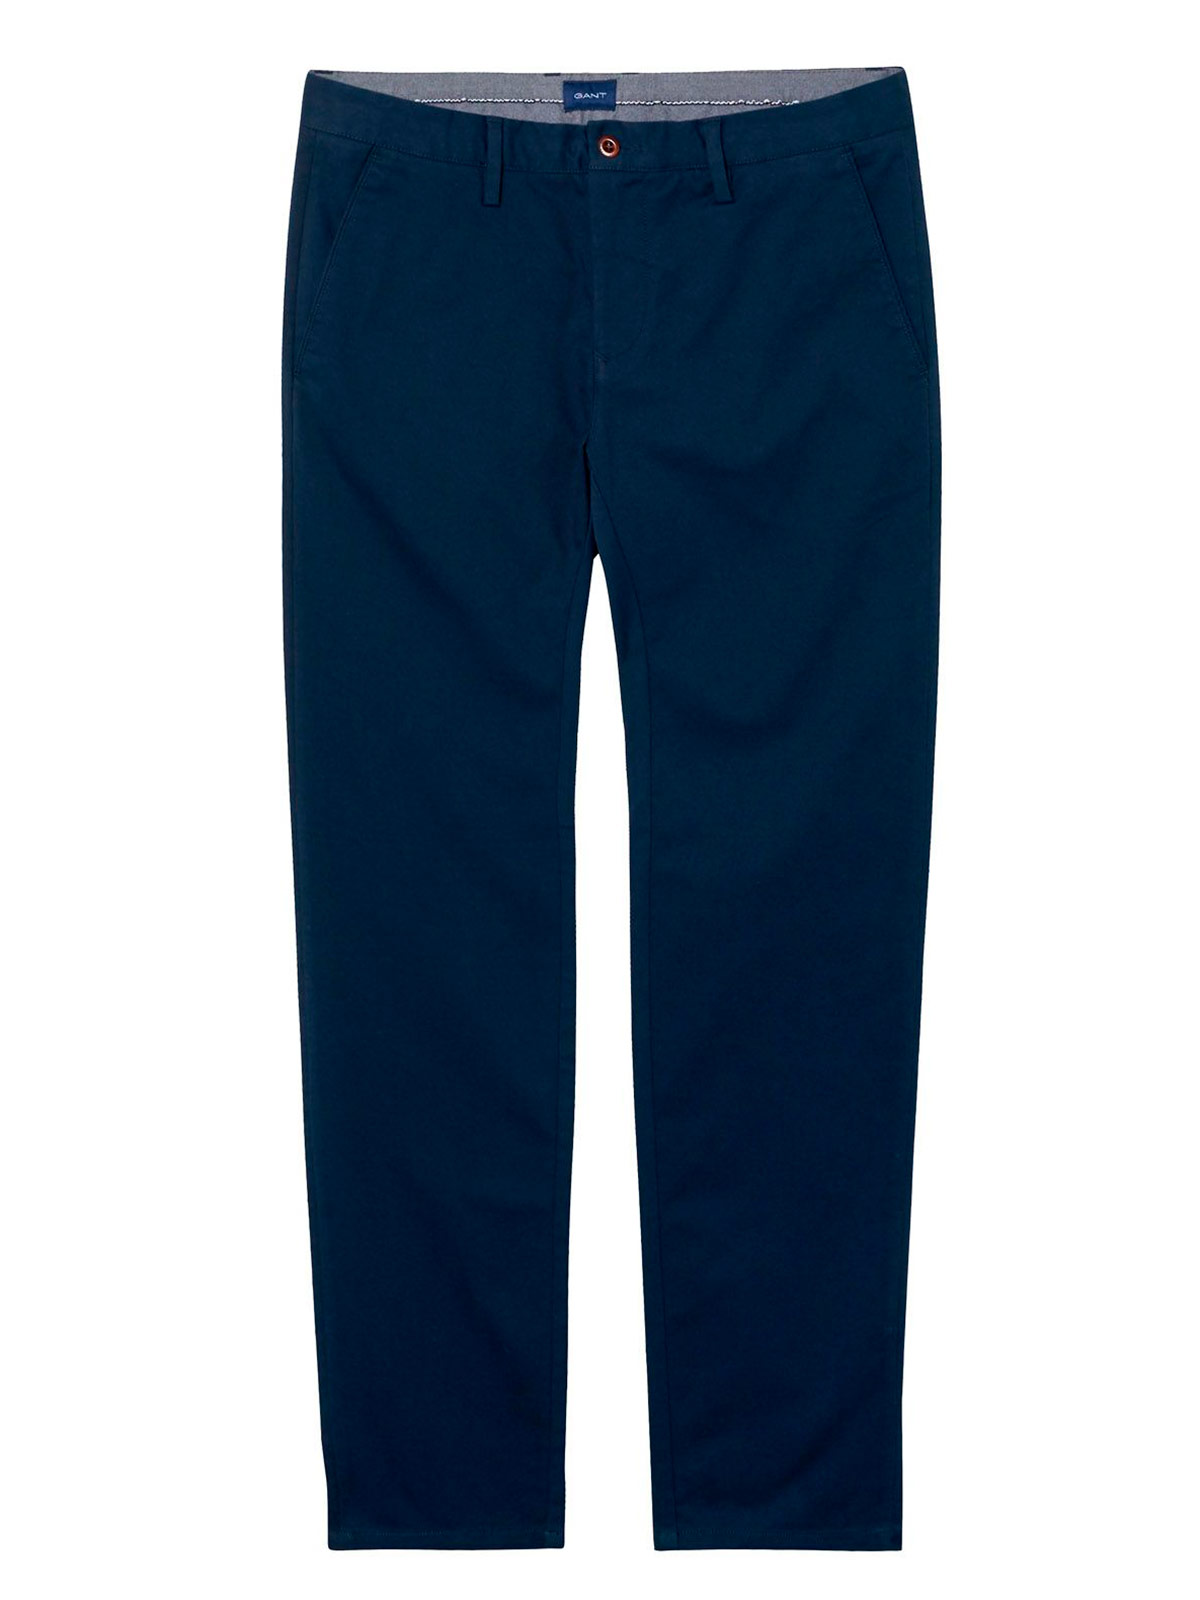 Picture of GANT | Men's Slim Fit Chinos